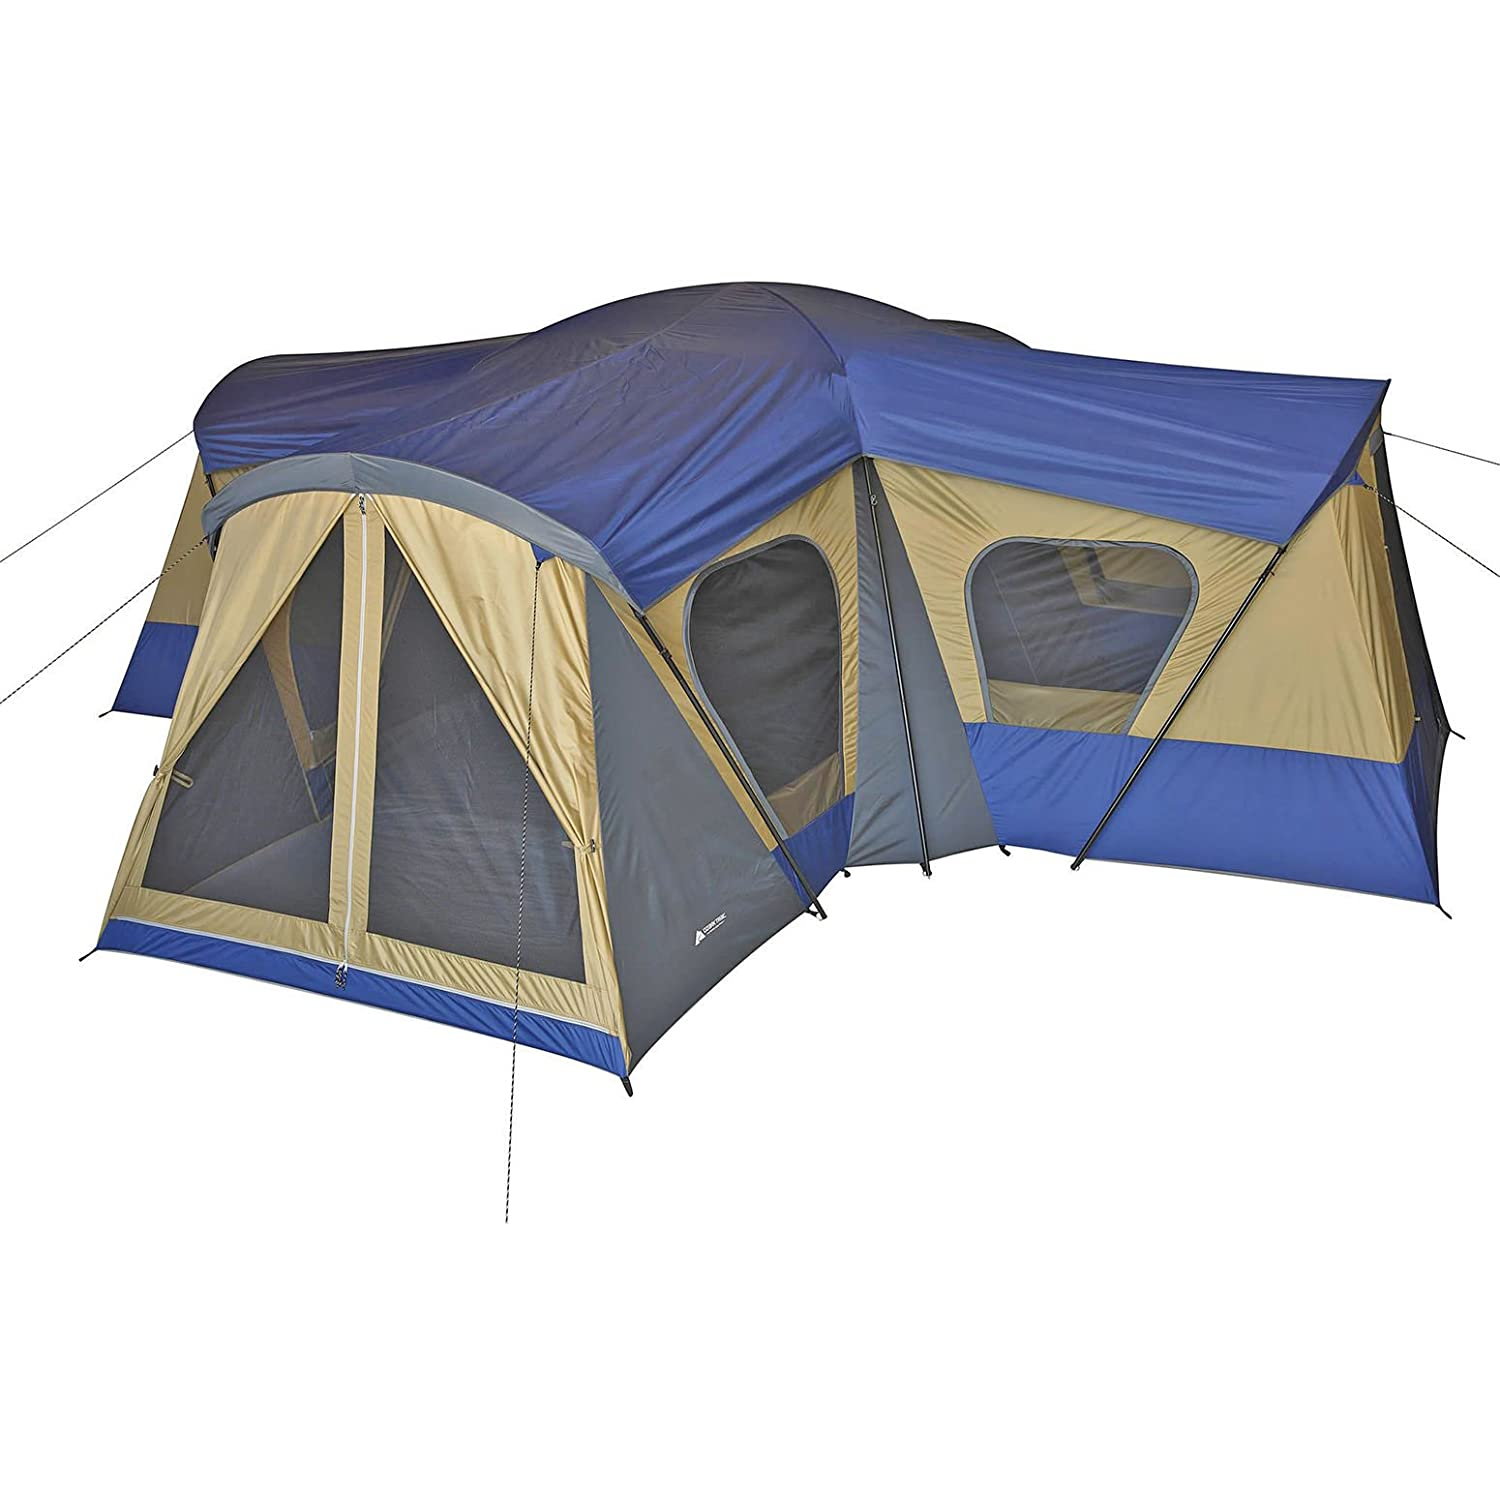 Amazon.com  Ozark Trail Base C& 14-Person Cabin Tent (Blue)  Sports u0026 Outdoors  sc 1 st  Amazon.com : ozark trail 4 season tent - memphite.com